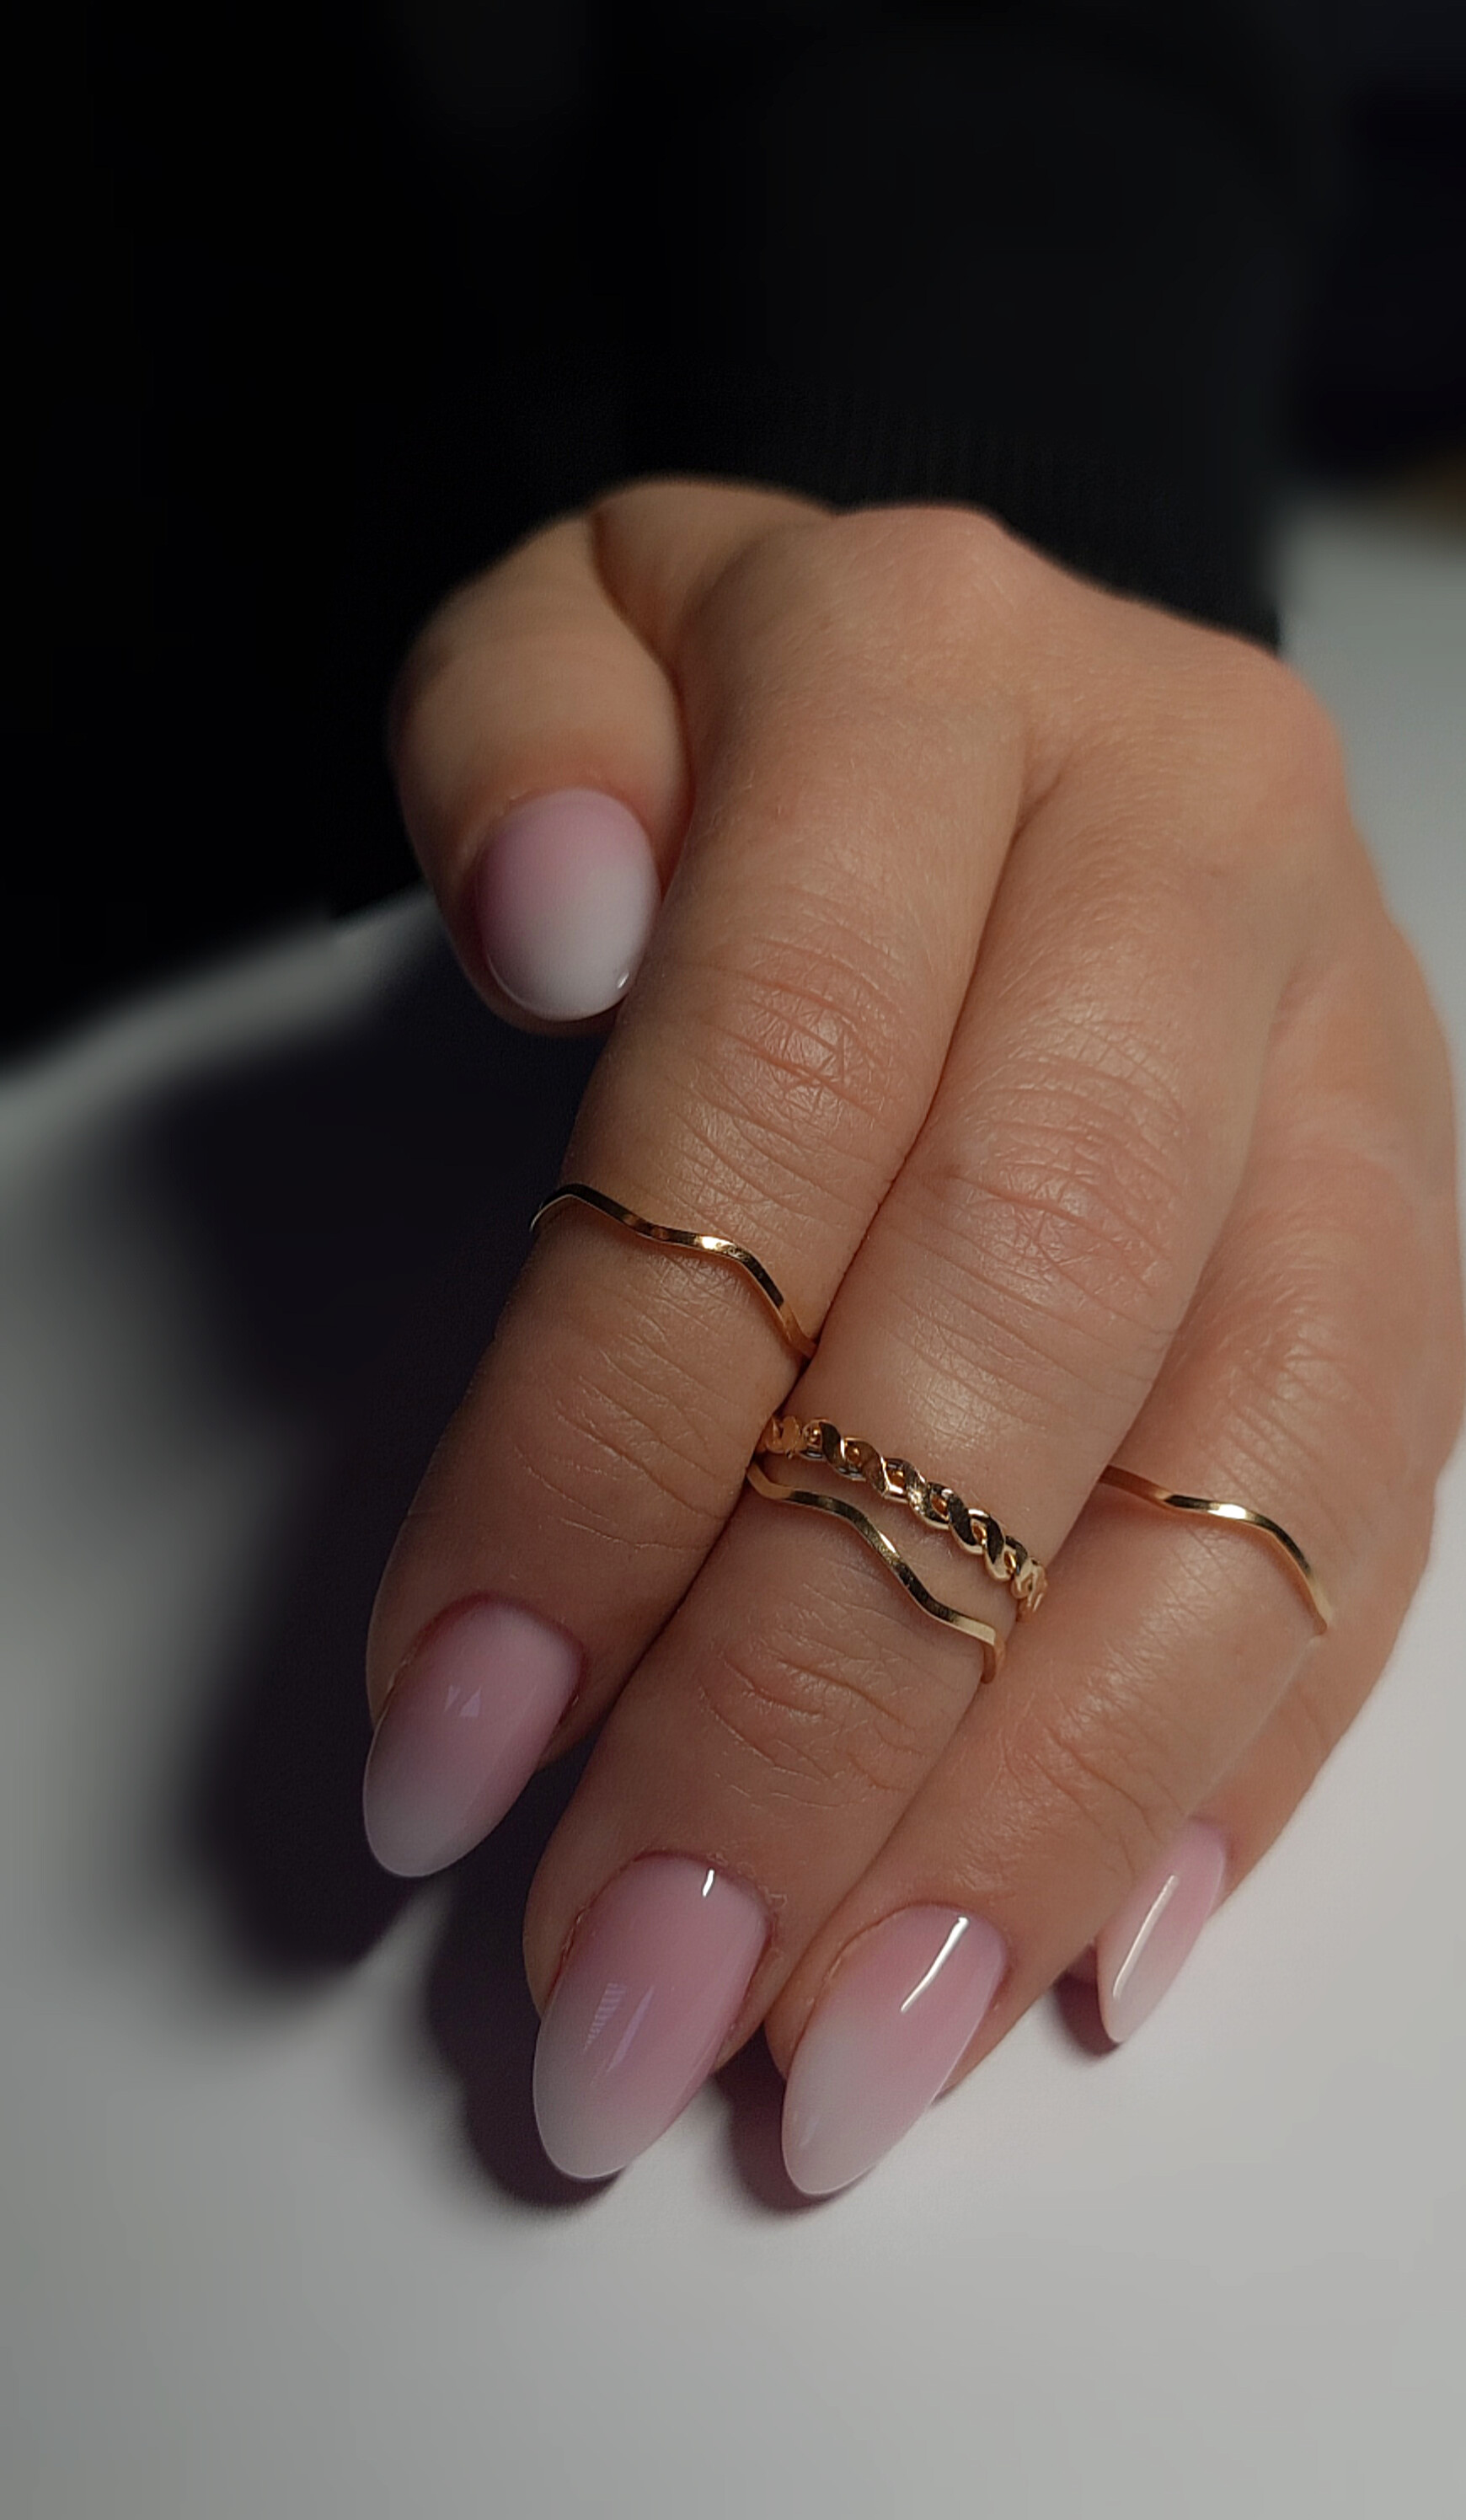 Step by Step Baby Boomers & Tips on Creating the Perfect French Mani